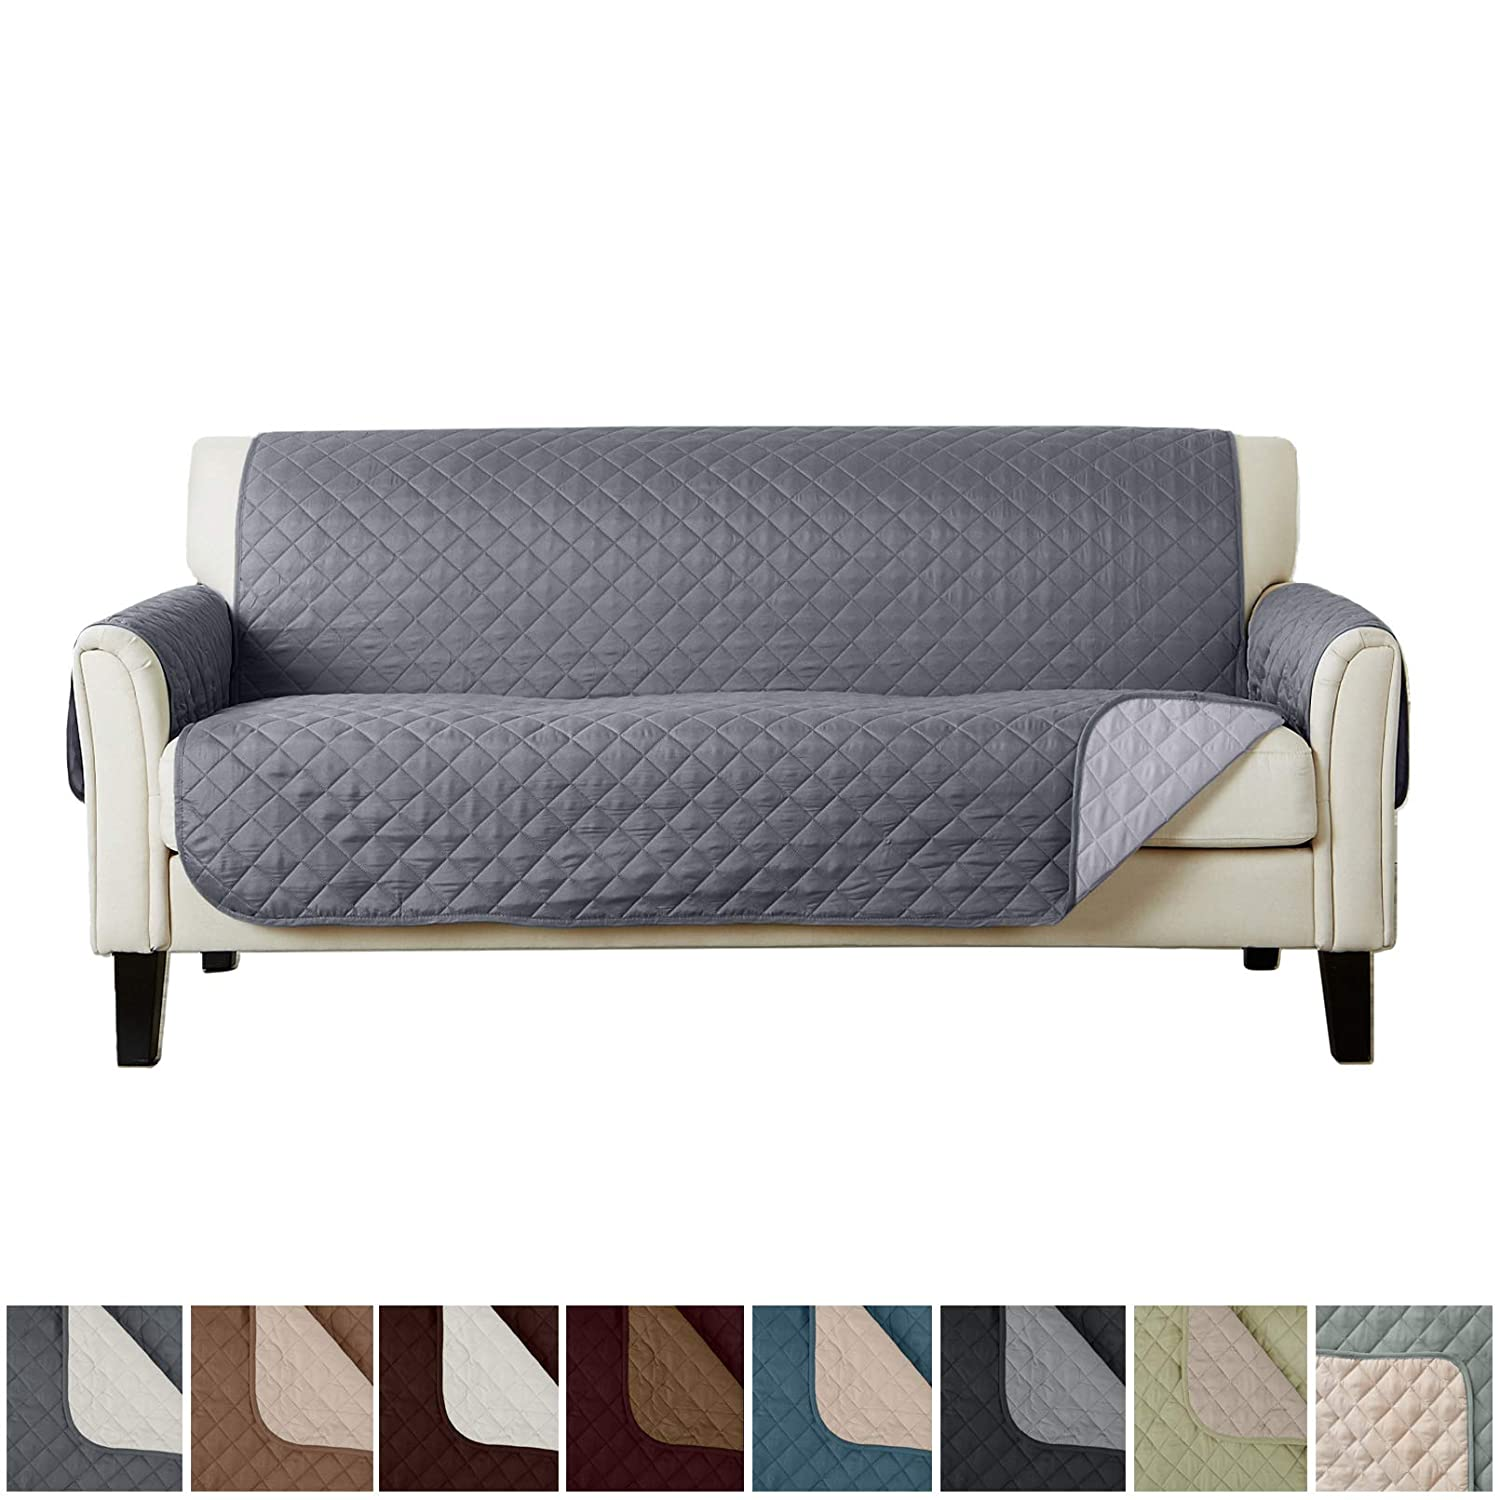 Deluxe Reversible Quilted Furniture Protector. Two Fresh Looks in One. By Home Fashion Designs Brand. (Sofa, Light Grey / Dark Grey) Home Fashions Distributor